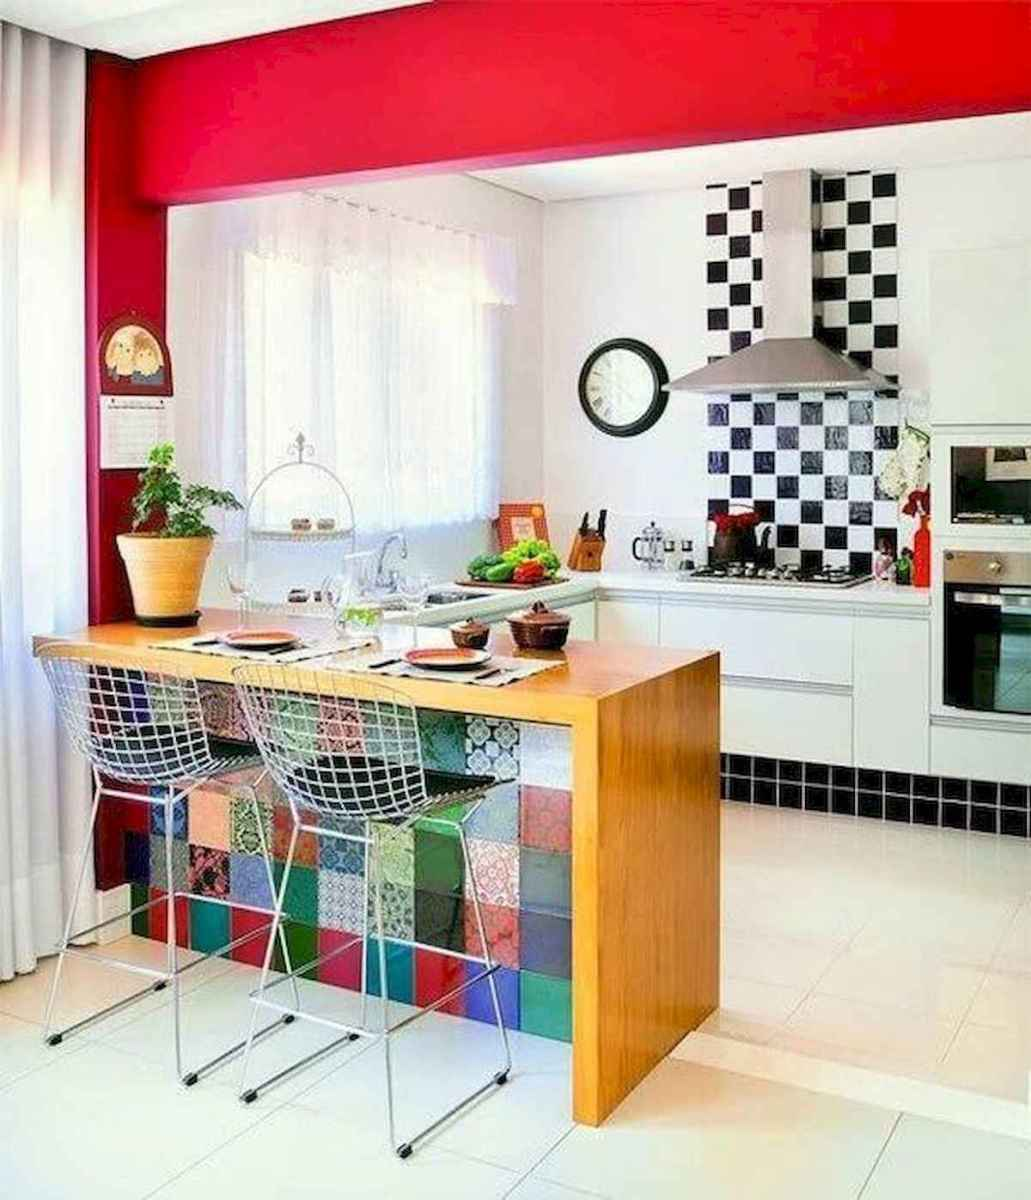 80+ Fantastic Colorful Kitchen Decor Ideas And Remodel for Summer Project (30)